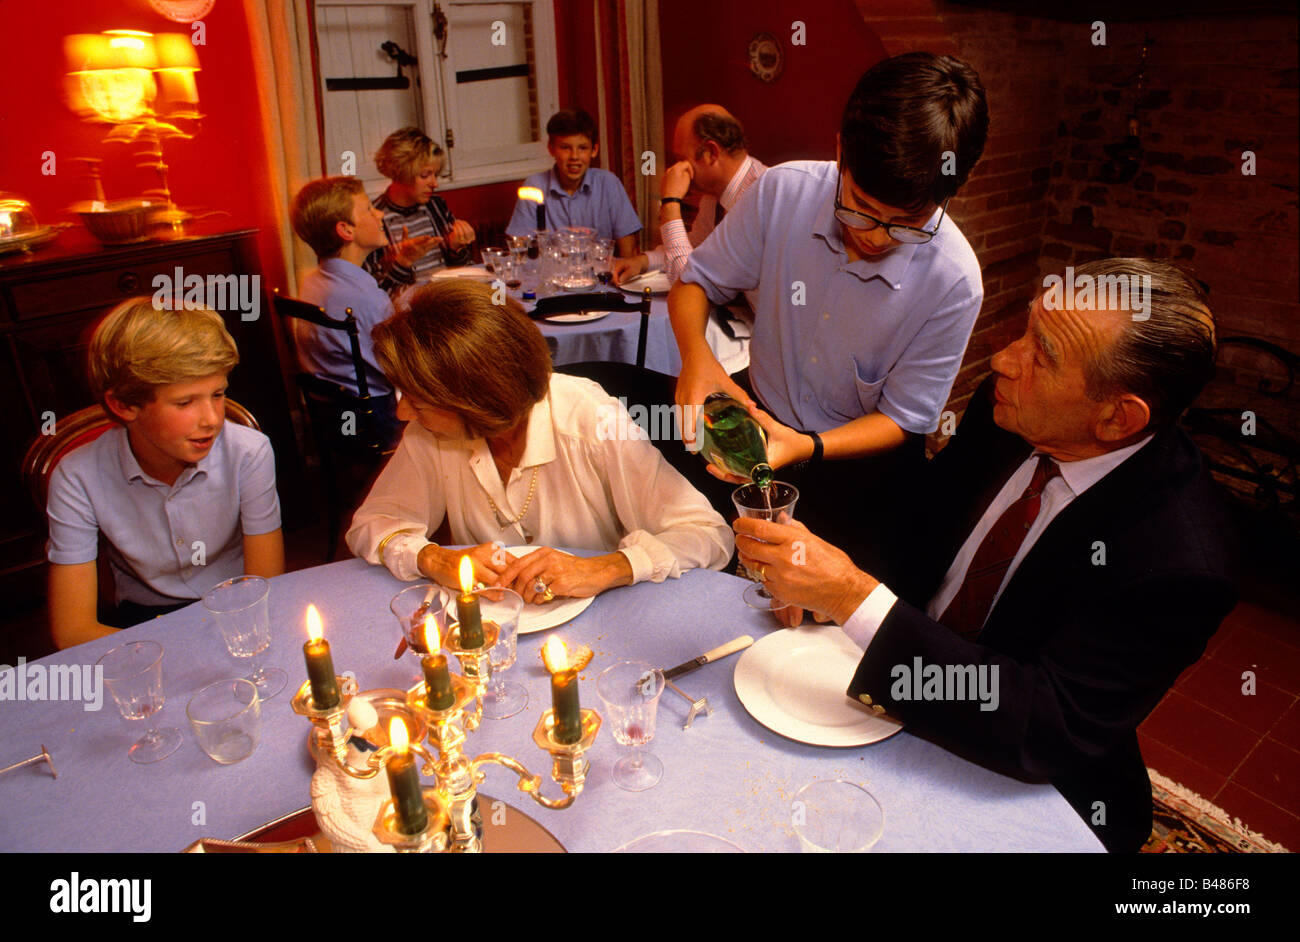 Boy pours water for a teacher during the evening meal - Stock Image